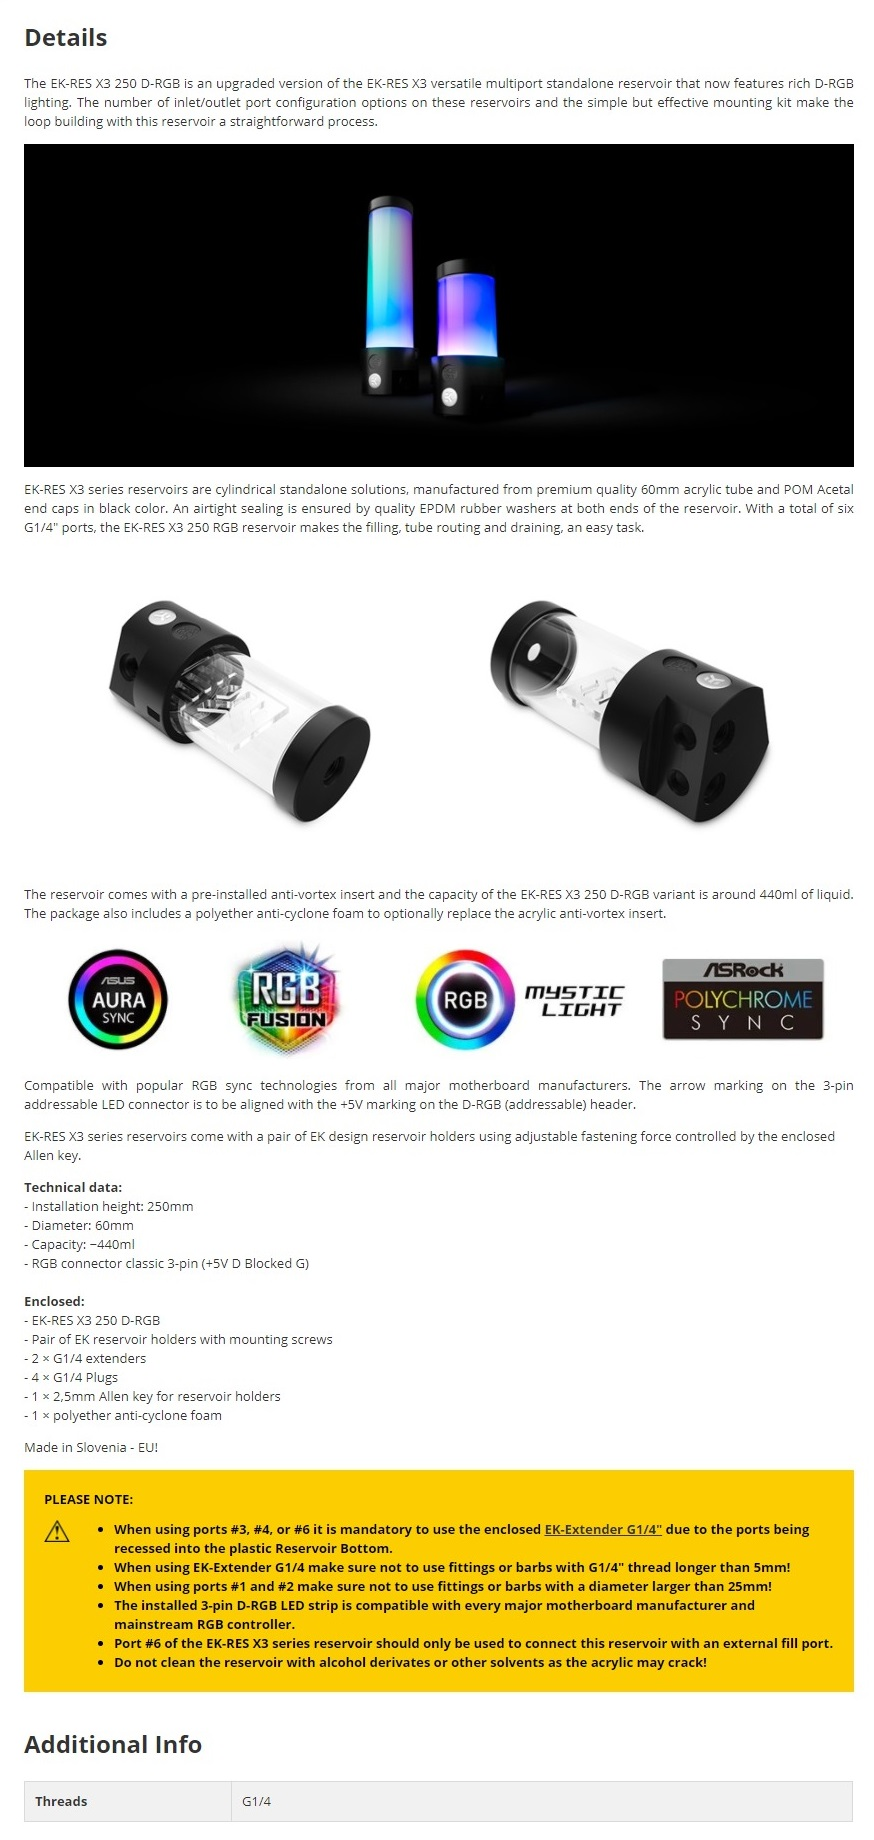 A large marketing image providing additional information about the product EK RES X3 250 D-RGB 250mm Tube Reservoir - Acetal - Additional alt info not provided